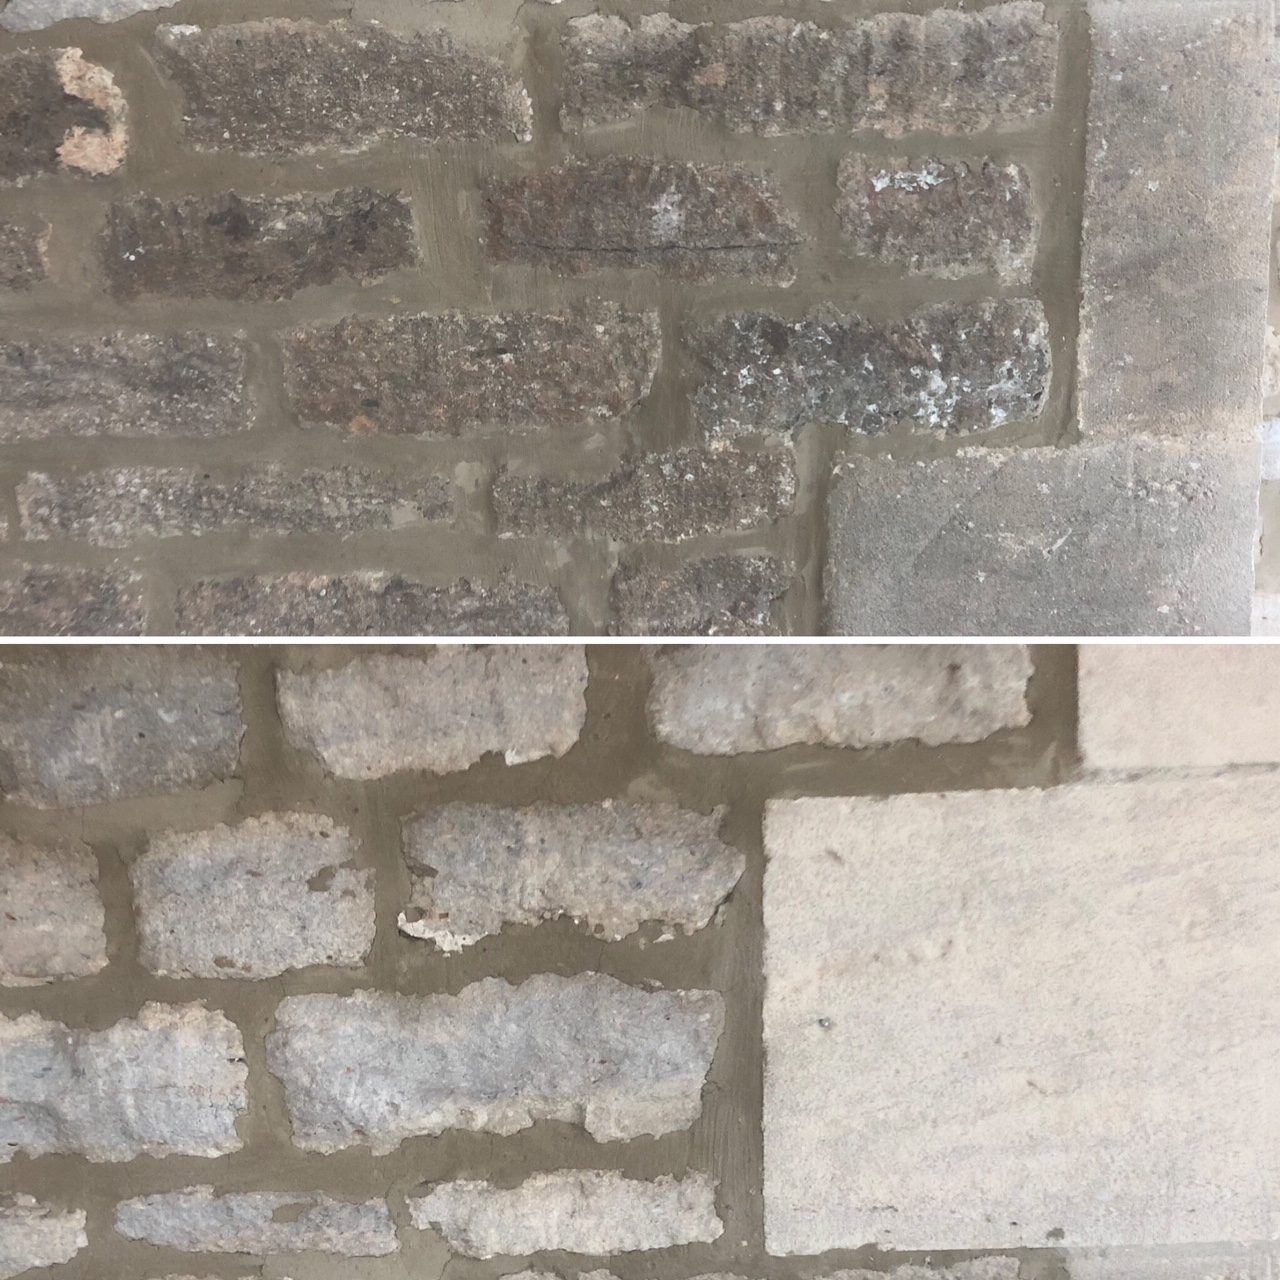 Sandblasting and cleaning old stone wall